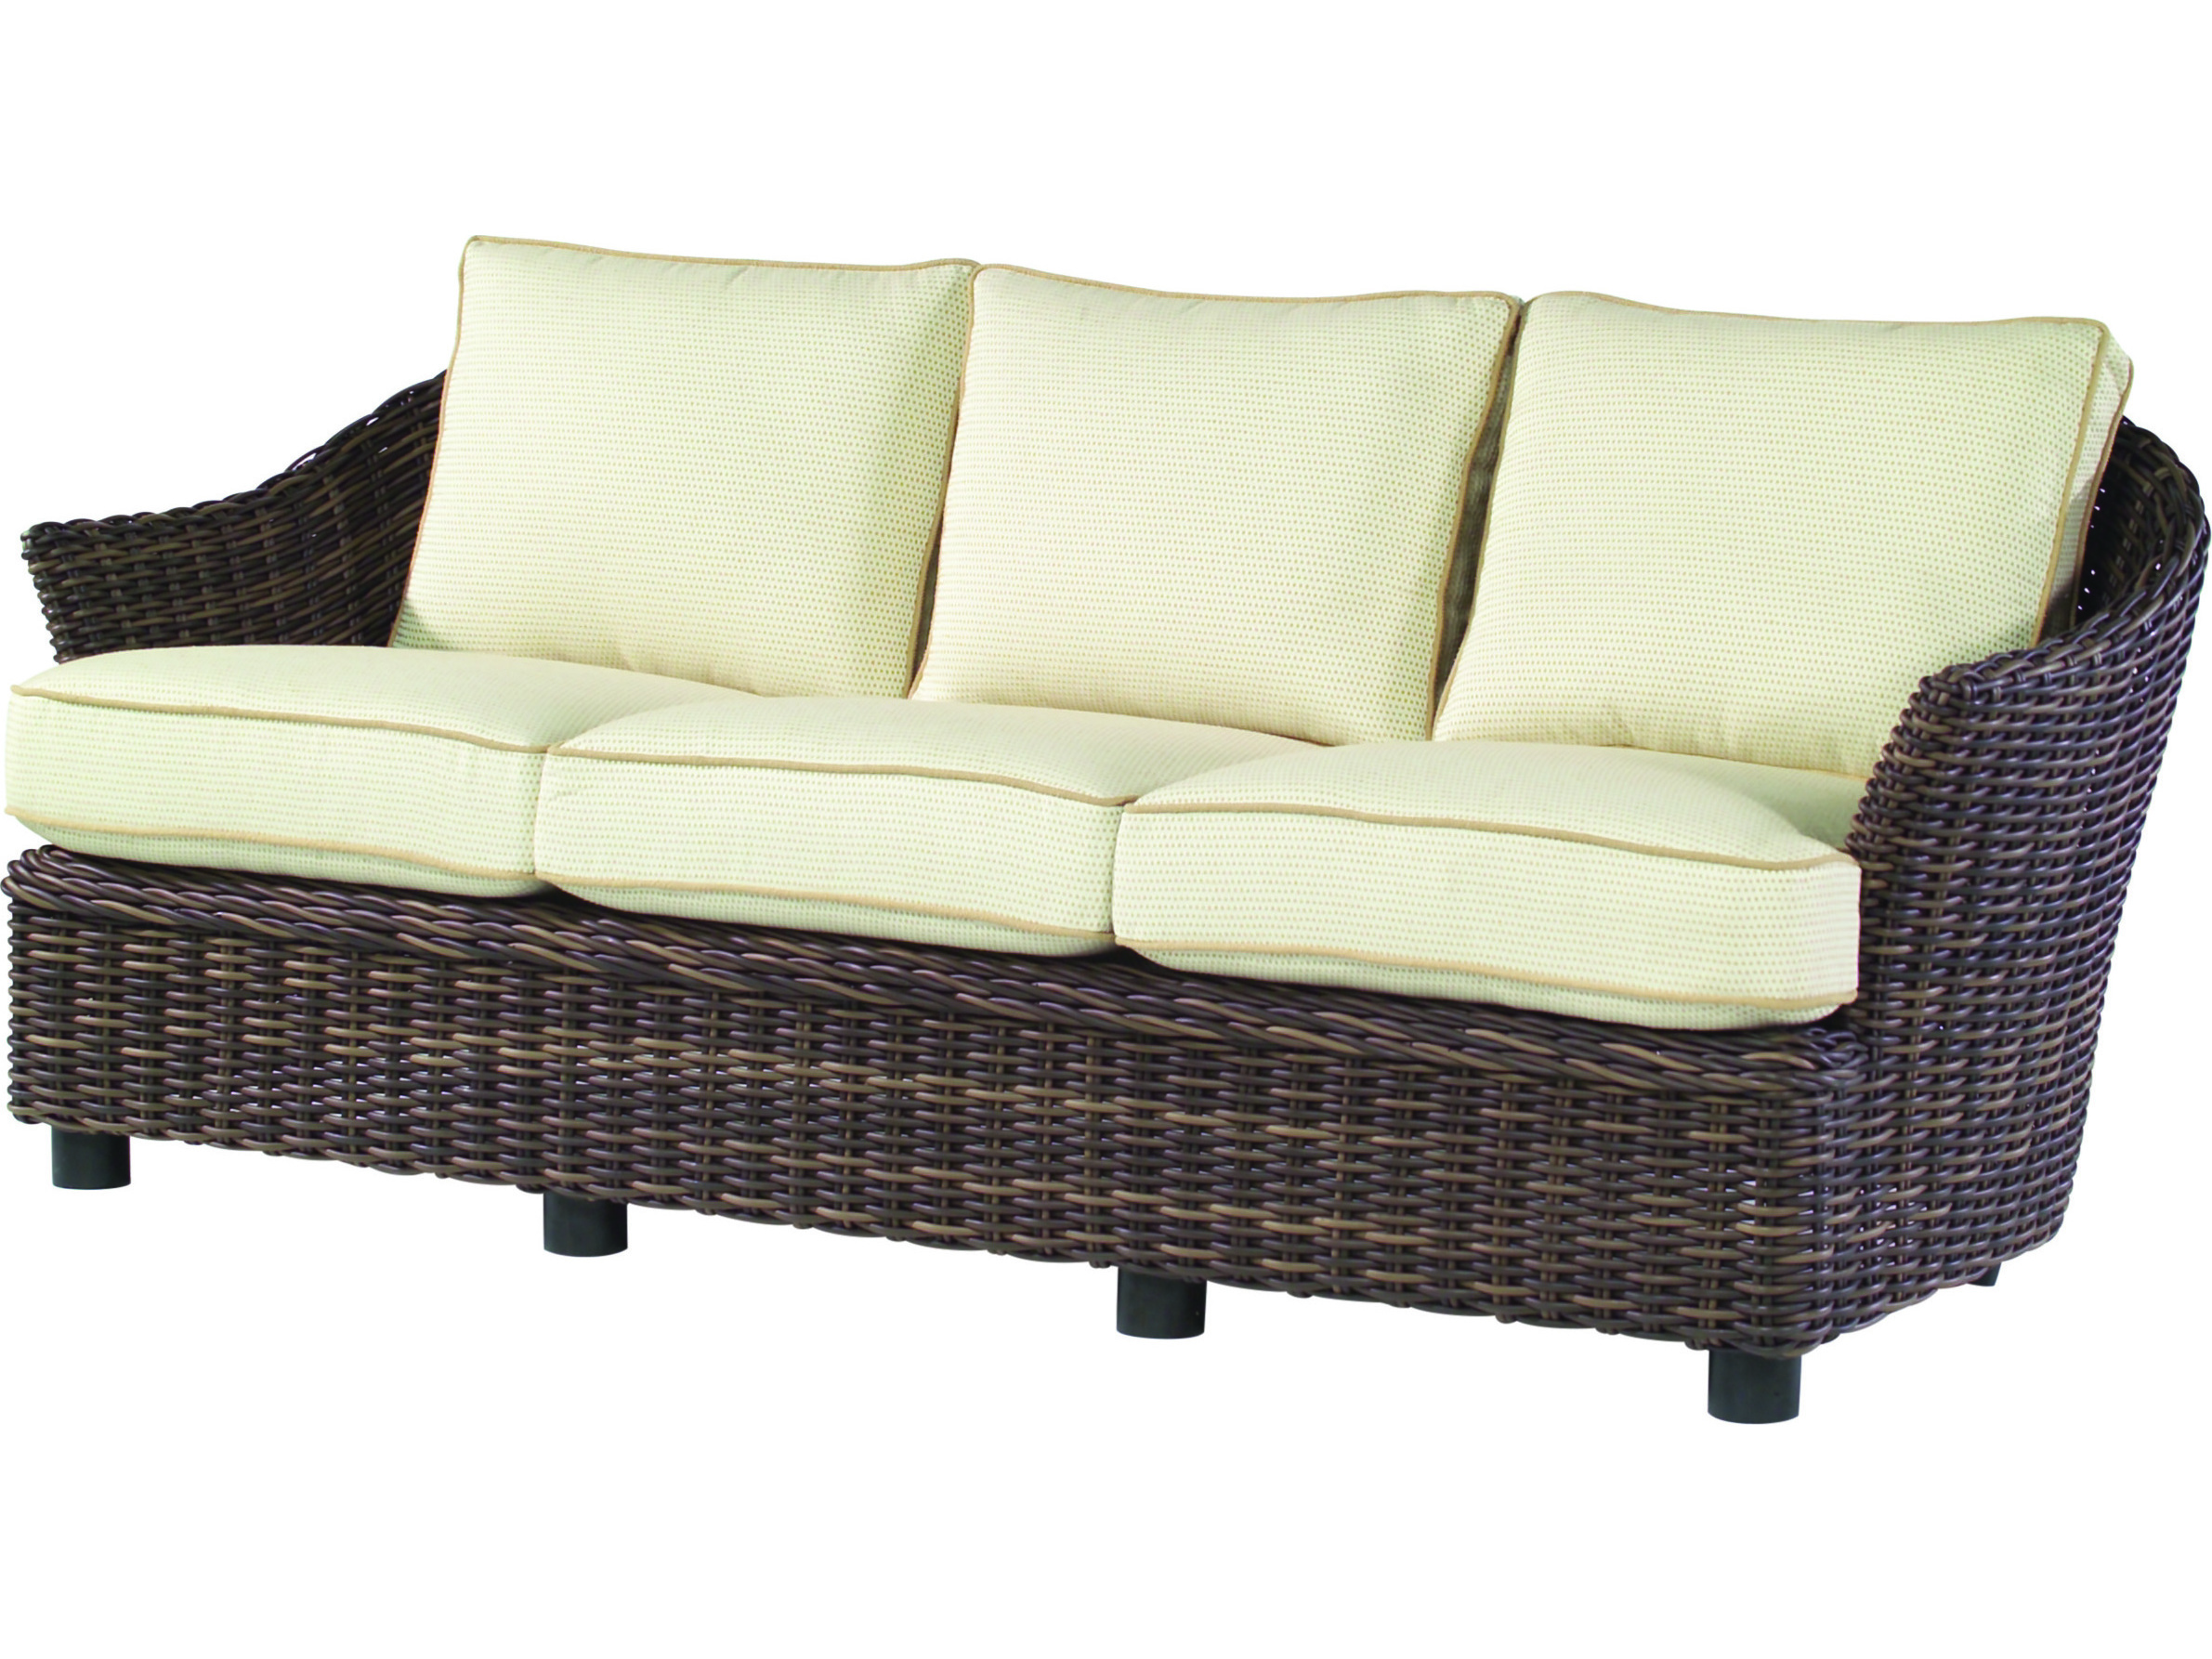 Whitecraft Sonoma Wicker Sofa S561031